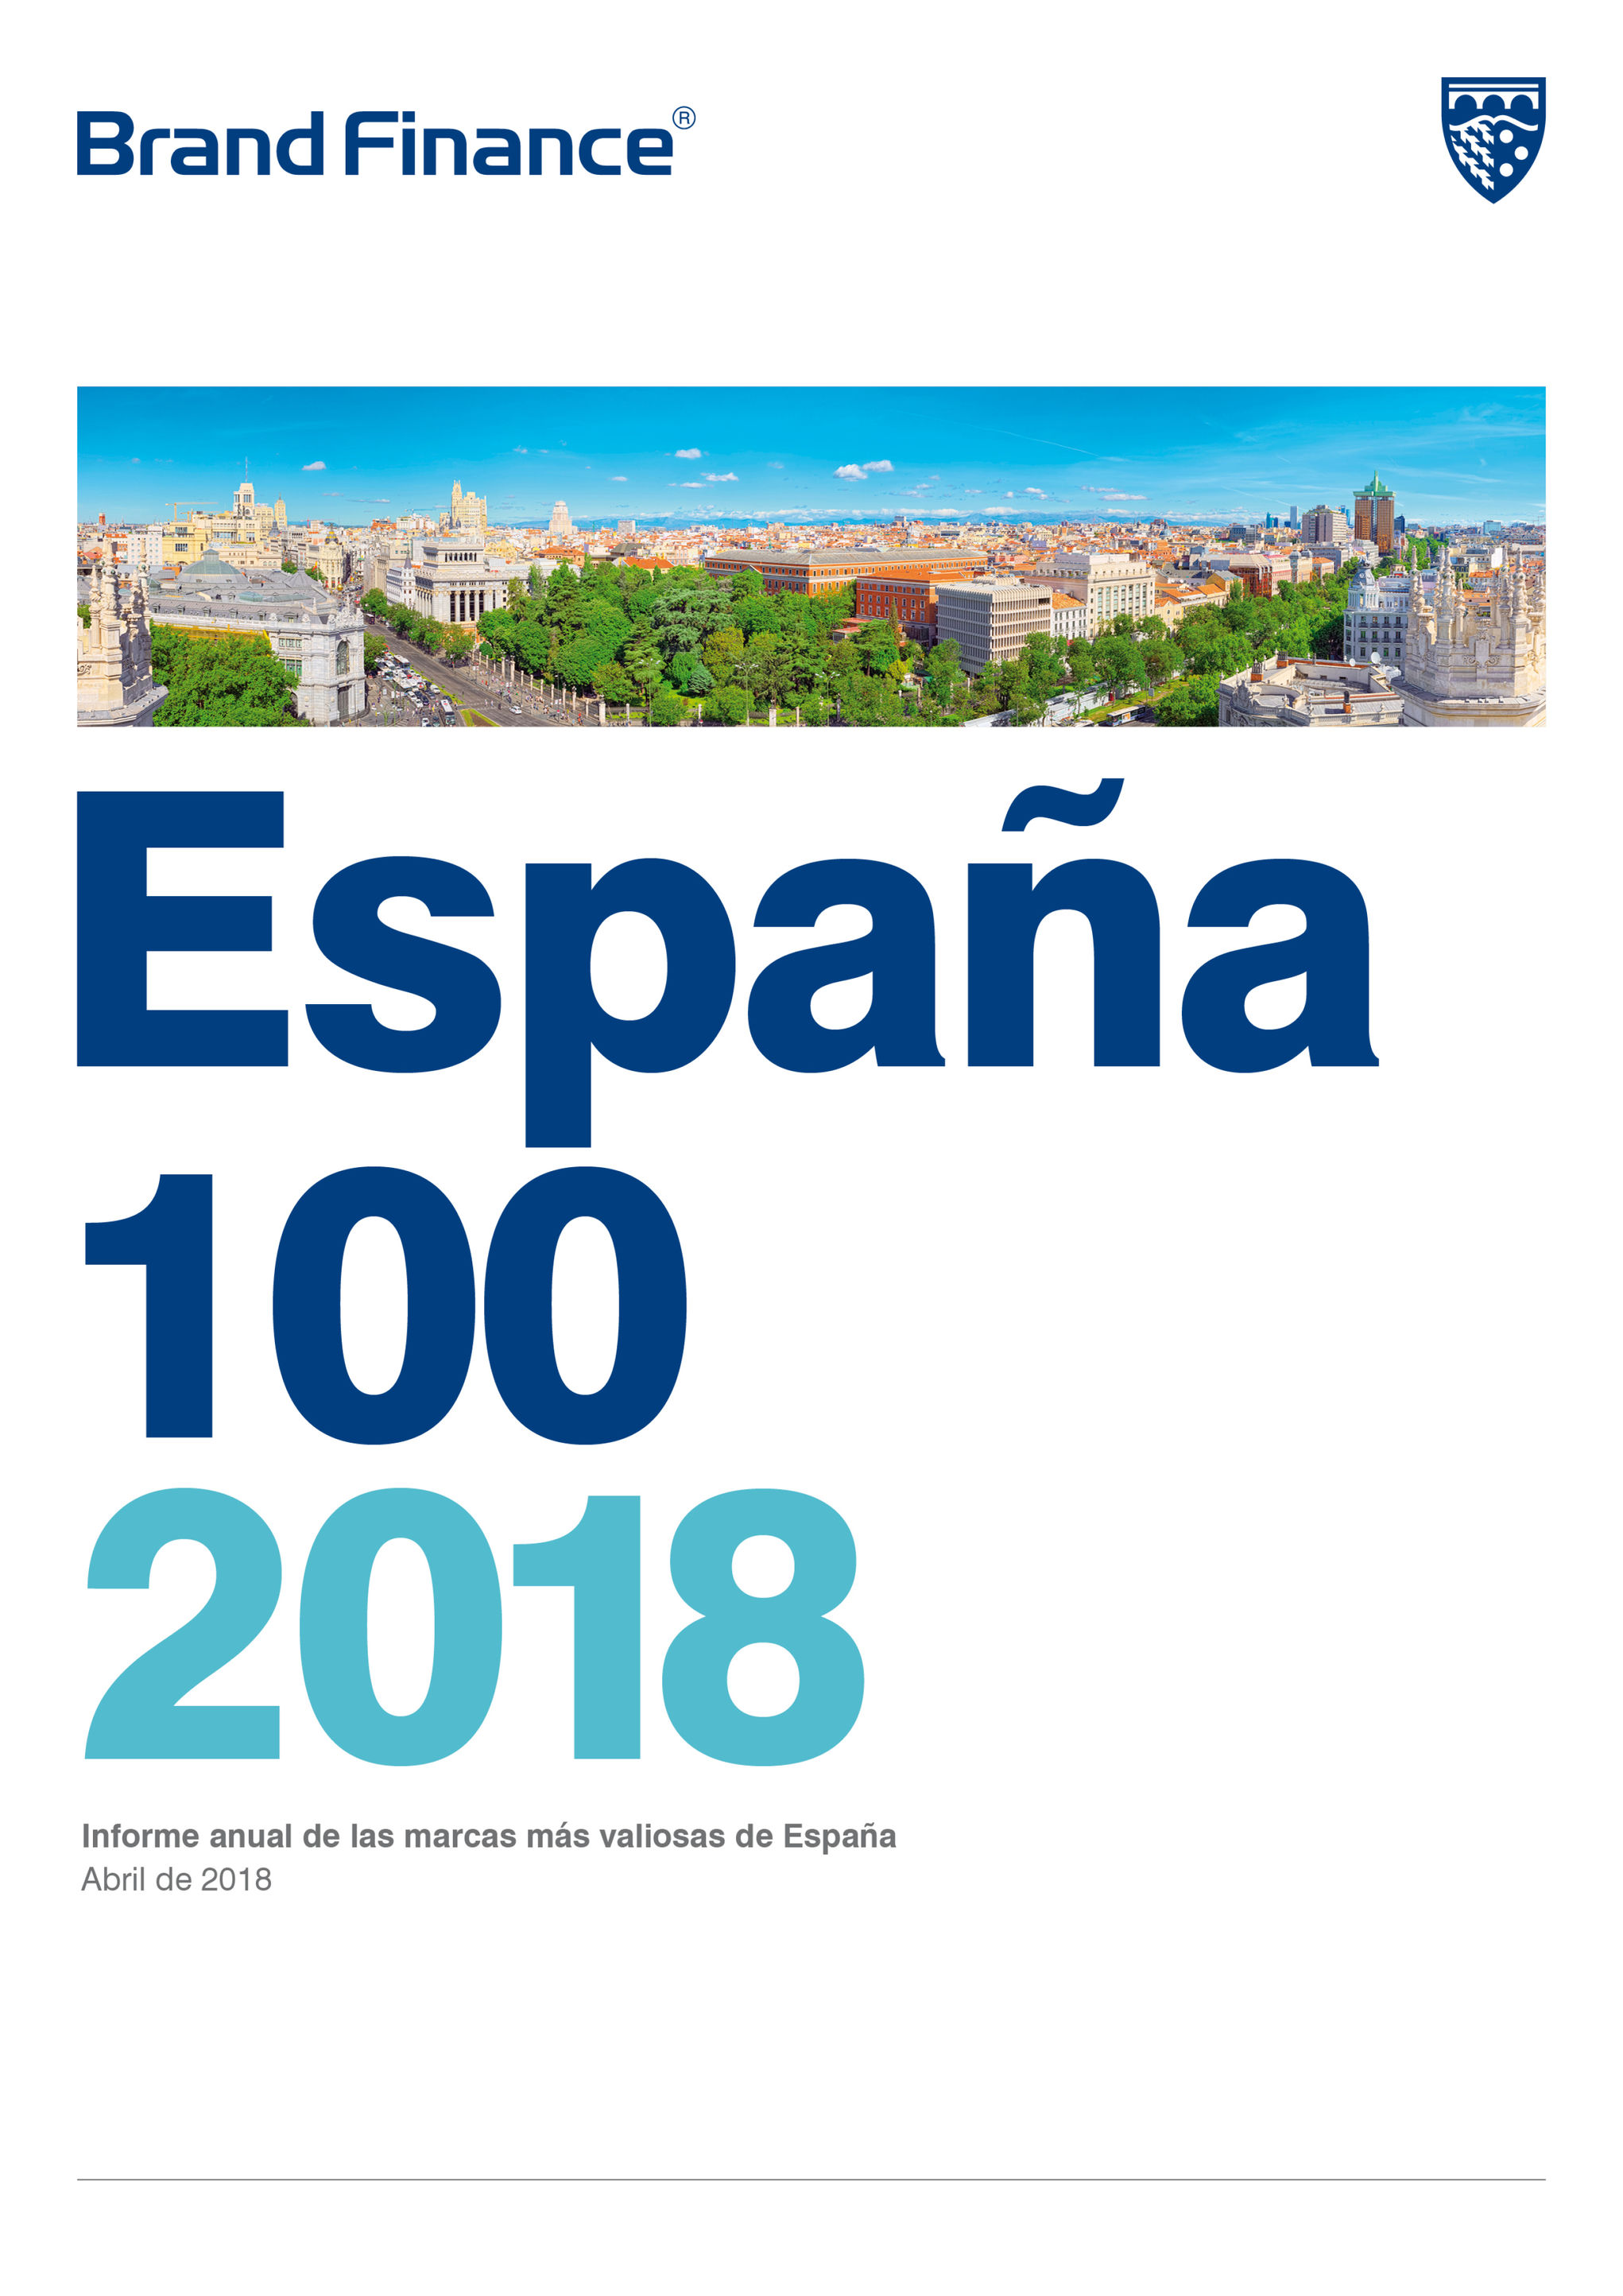 Brand Finance España 100 2018